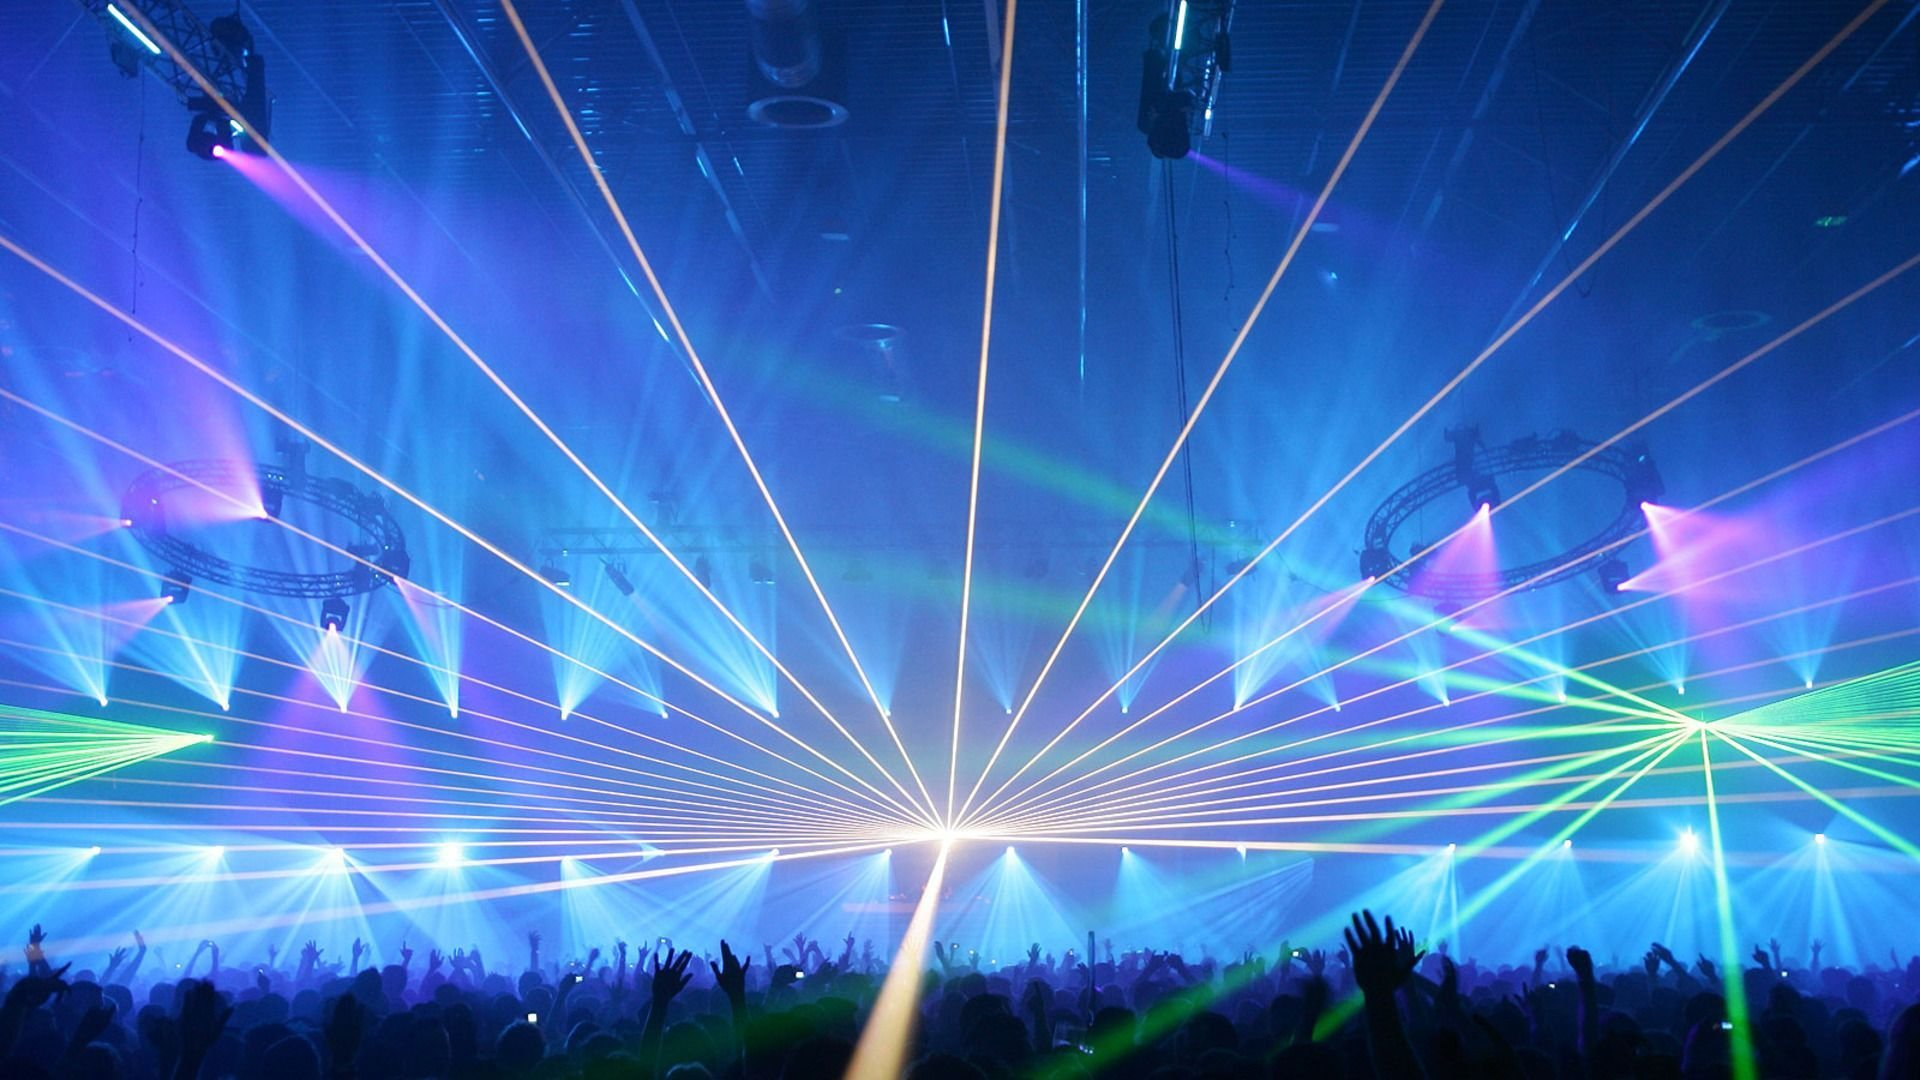 Laser show concert lights color abstraction psychedelic ...